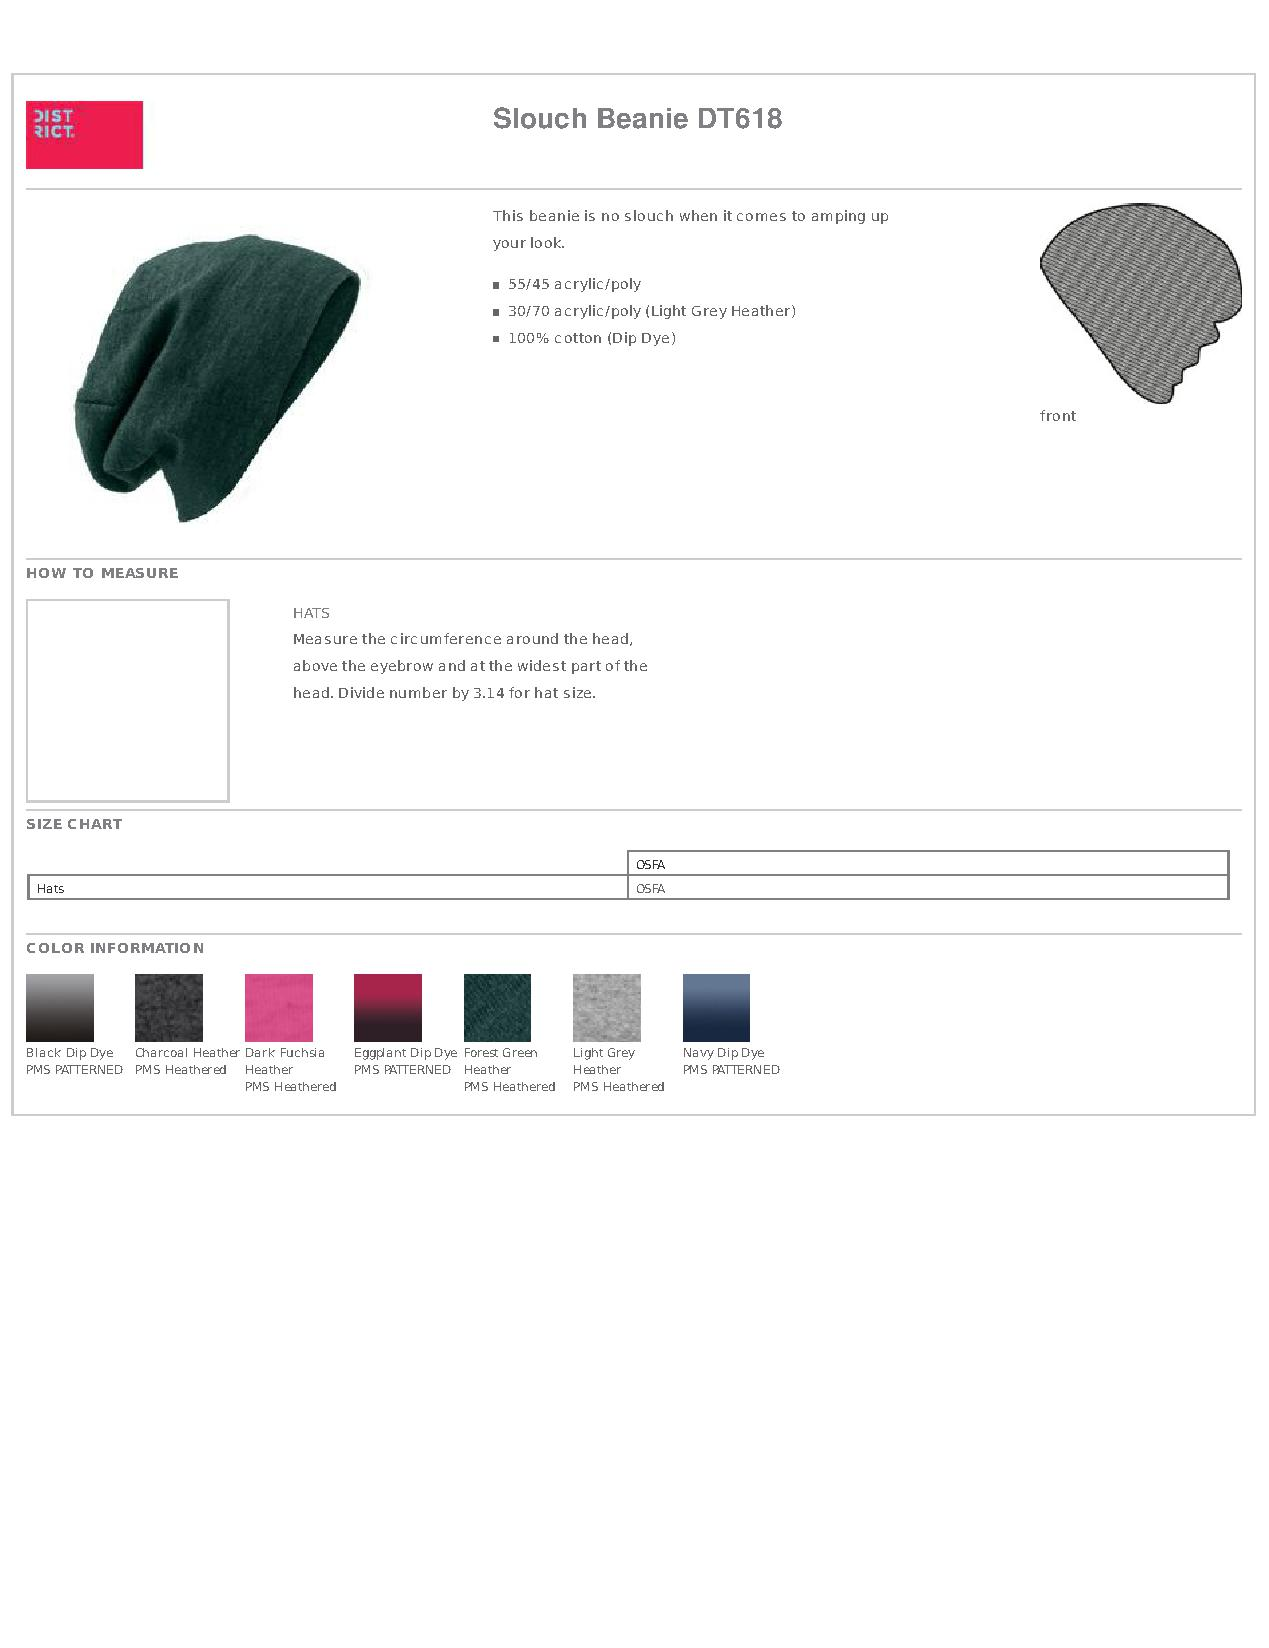 ea7a2345410 Popular Designs. custom design of District DT618 Slouch Beanie